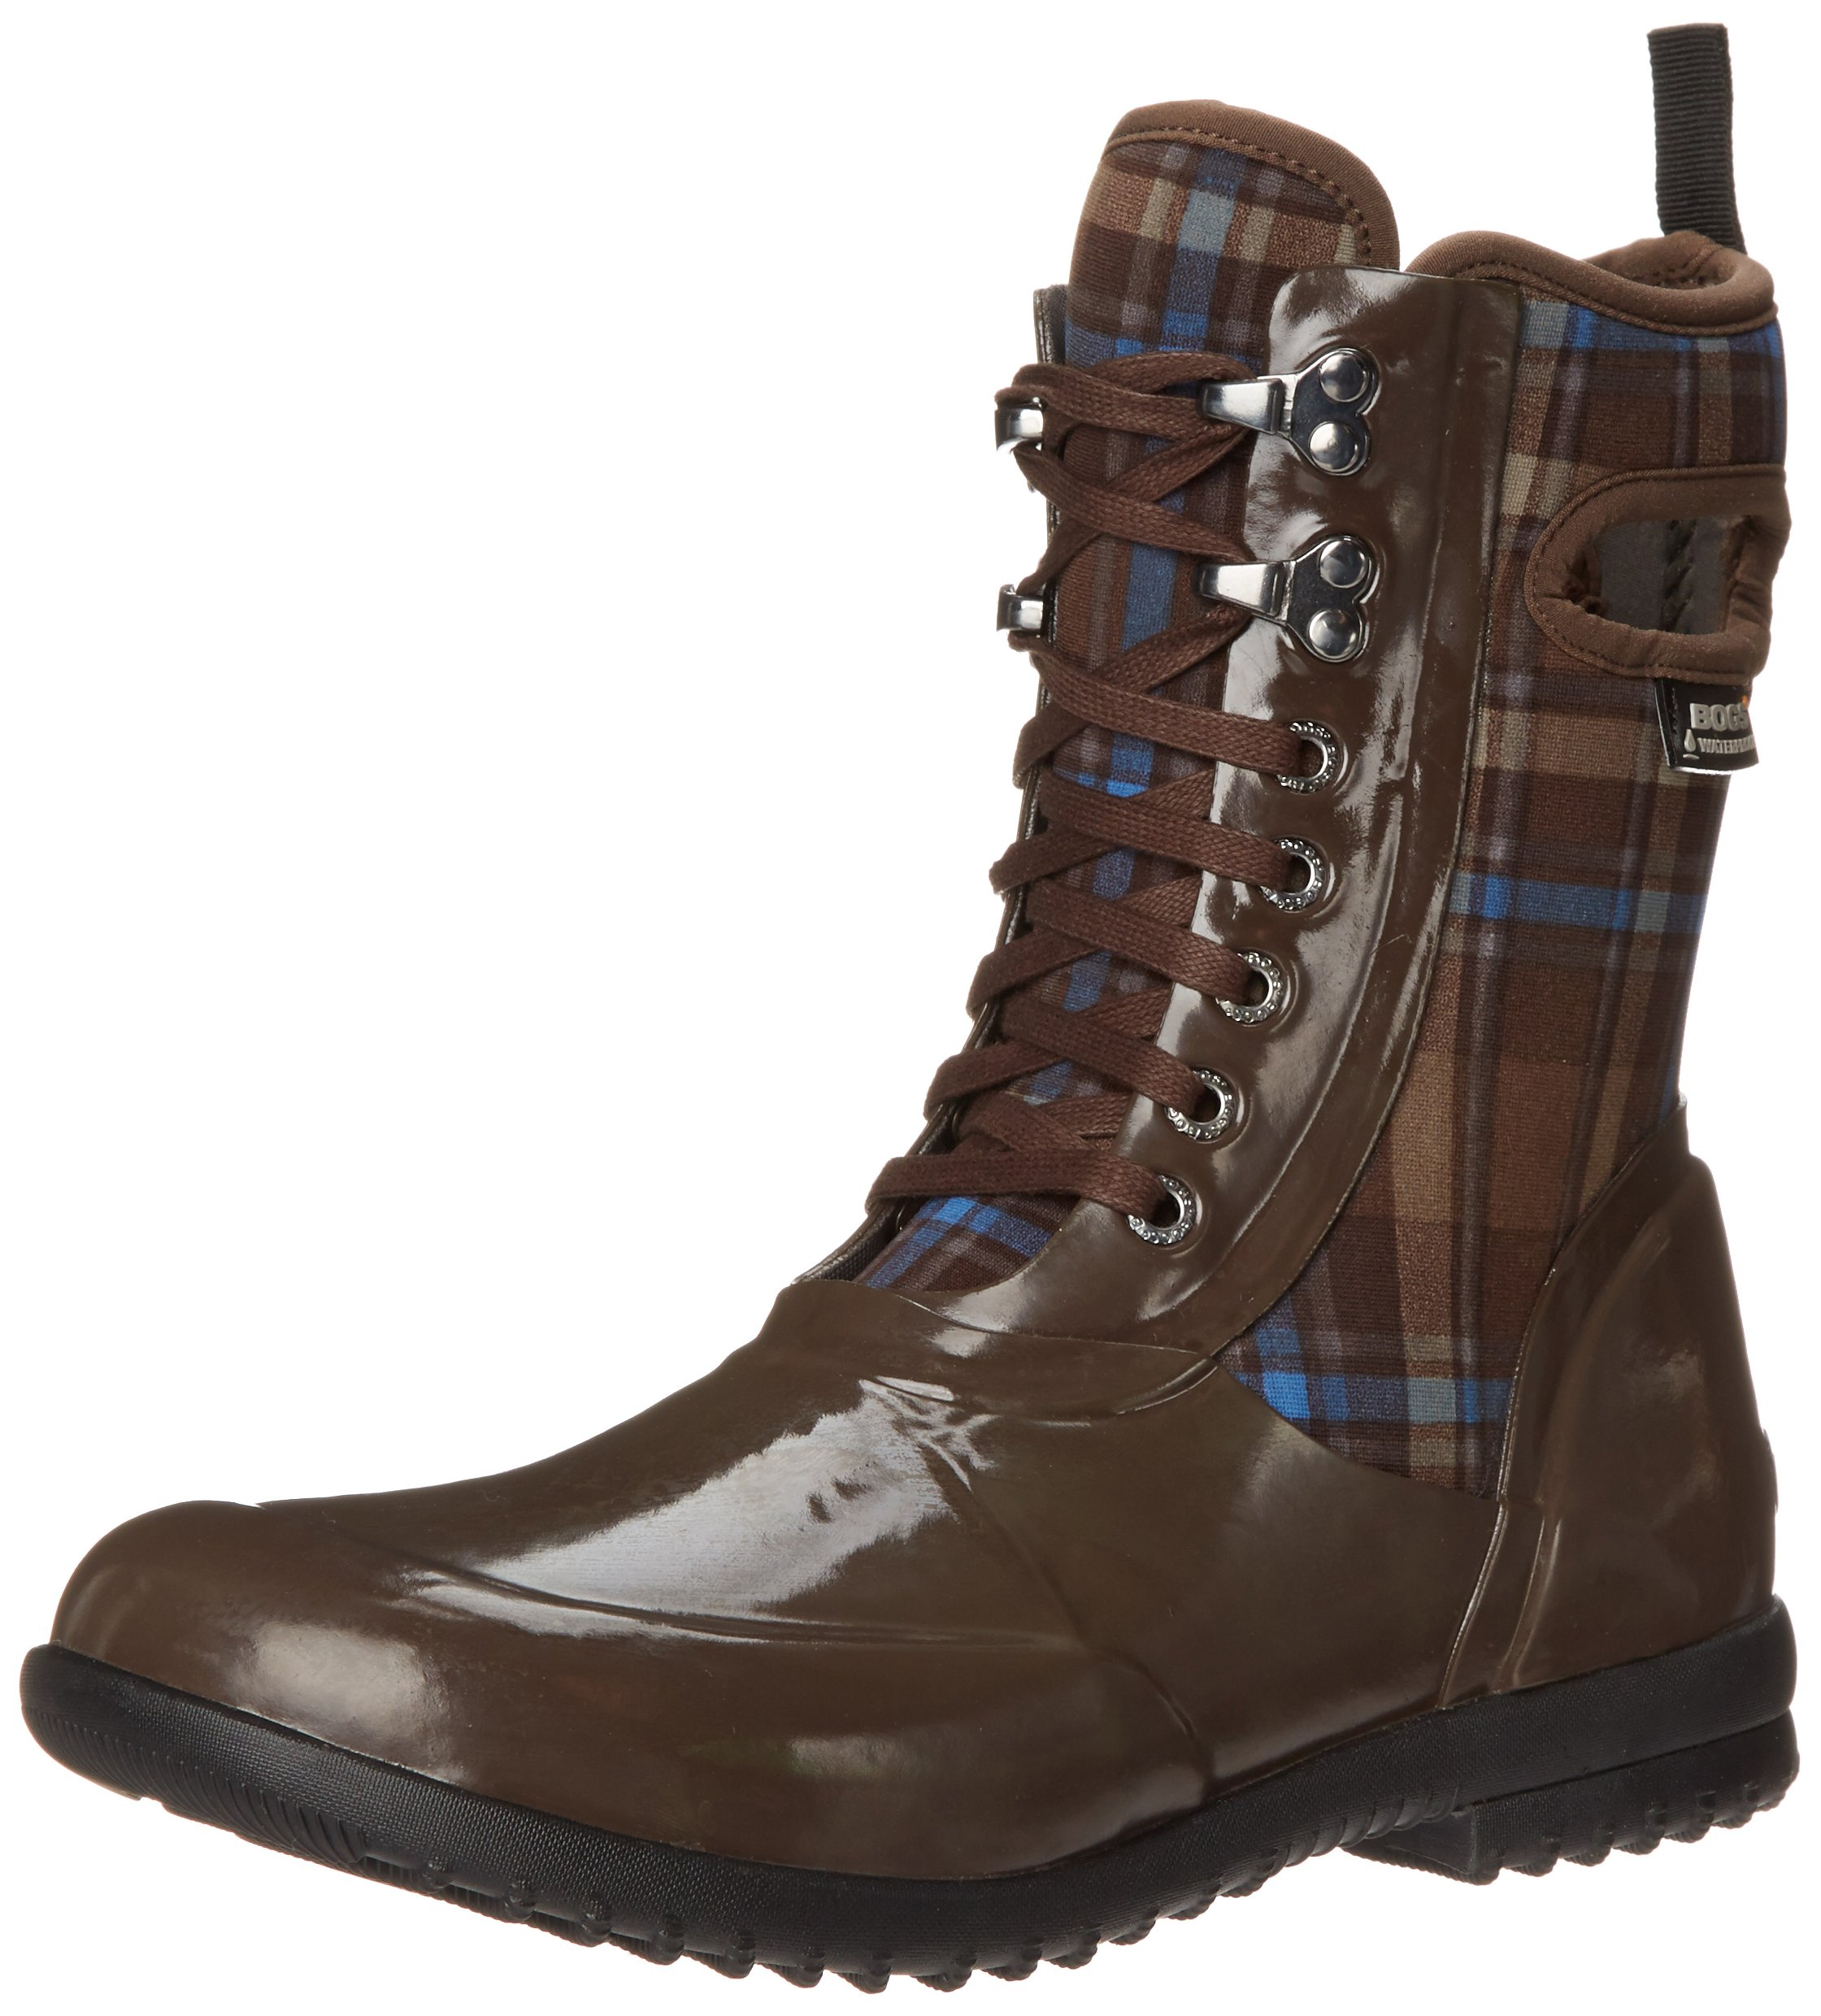 Bogs Women's Sidney Lace Plaid All Weather Rain Boot, Brown/Multi,8 M US by Bogs